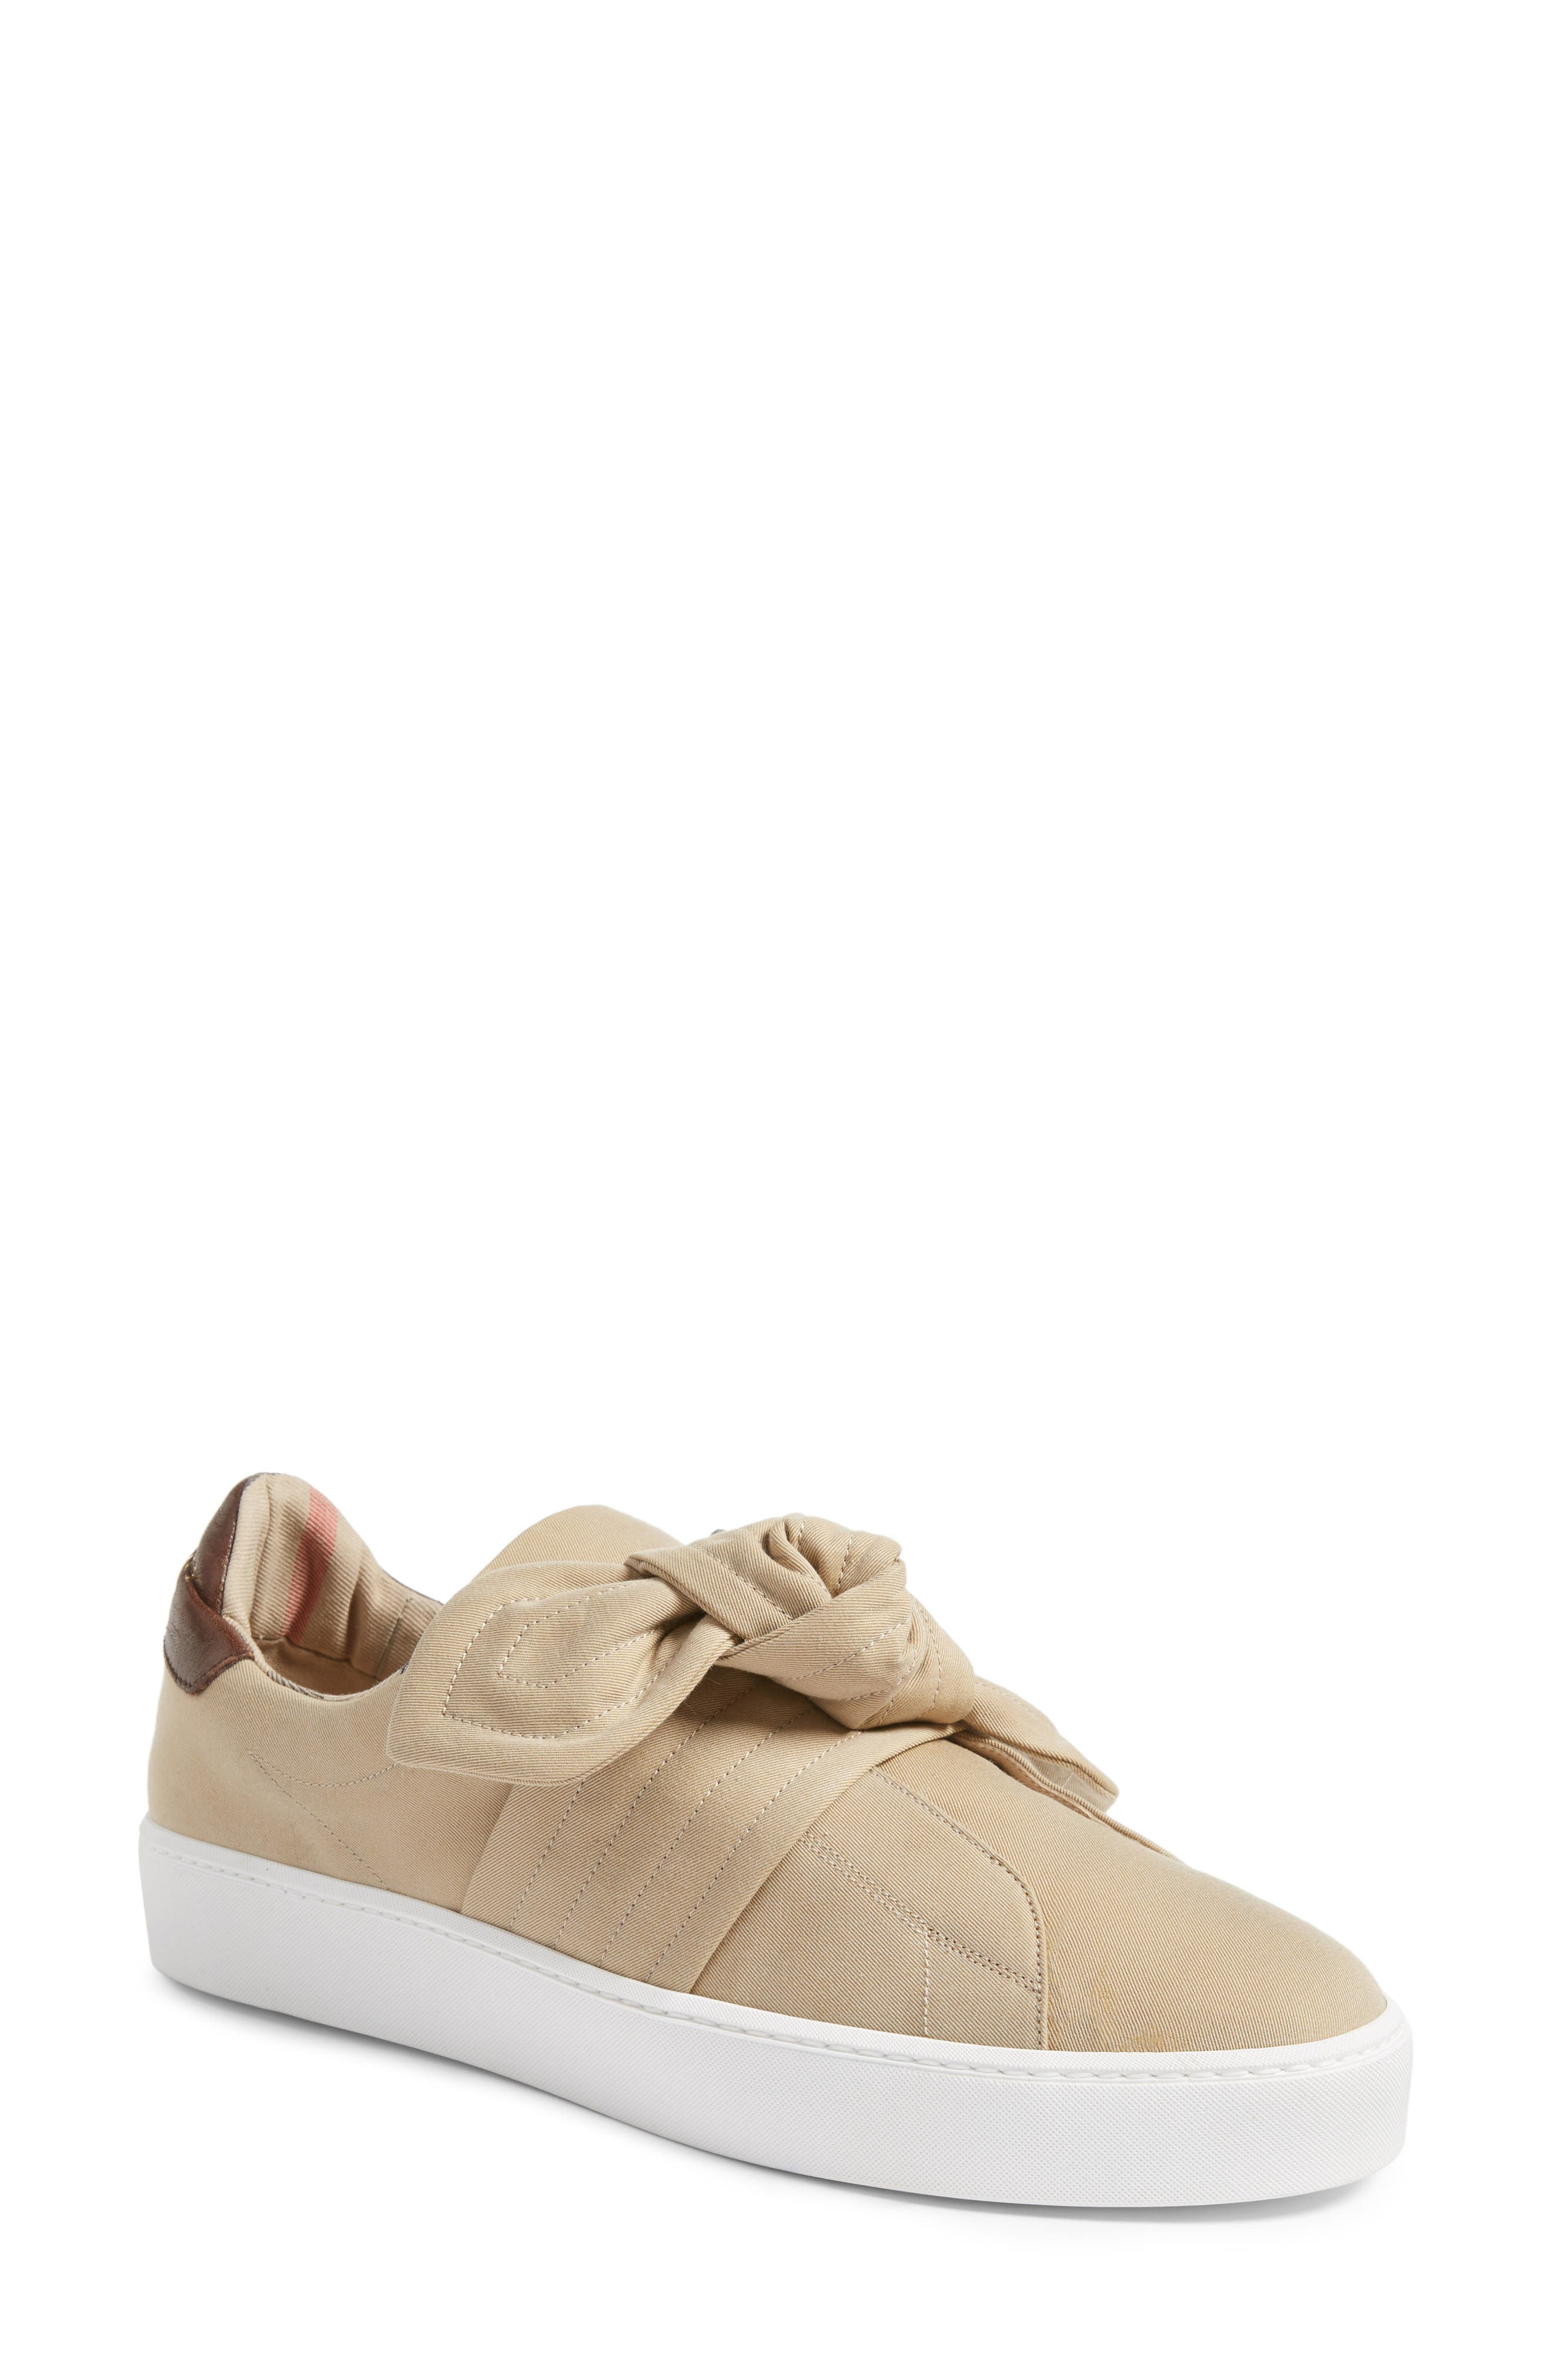 Alternate Image 1 Selected - Burberry Knot Sneaker (Women)